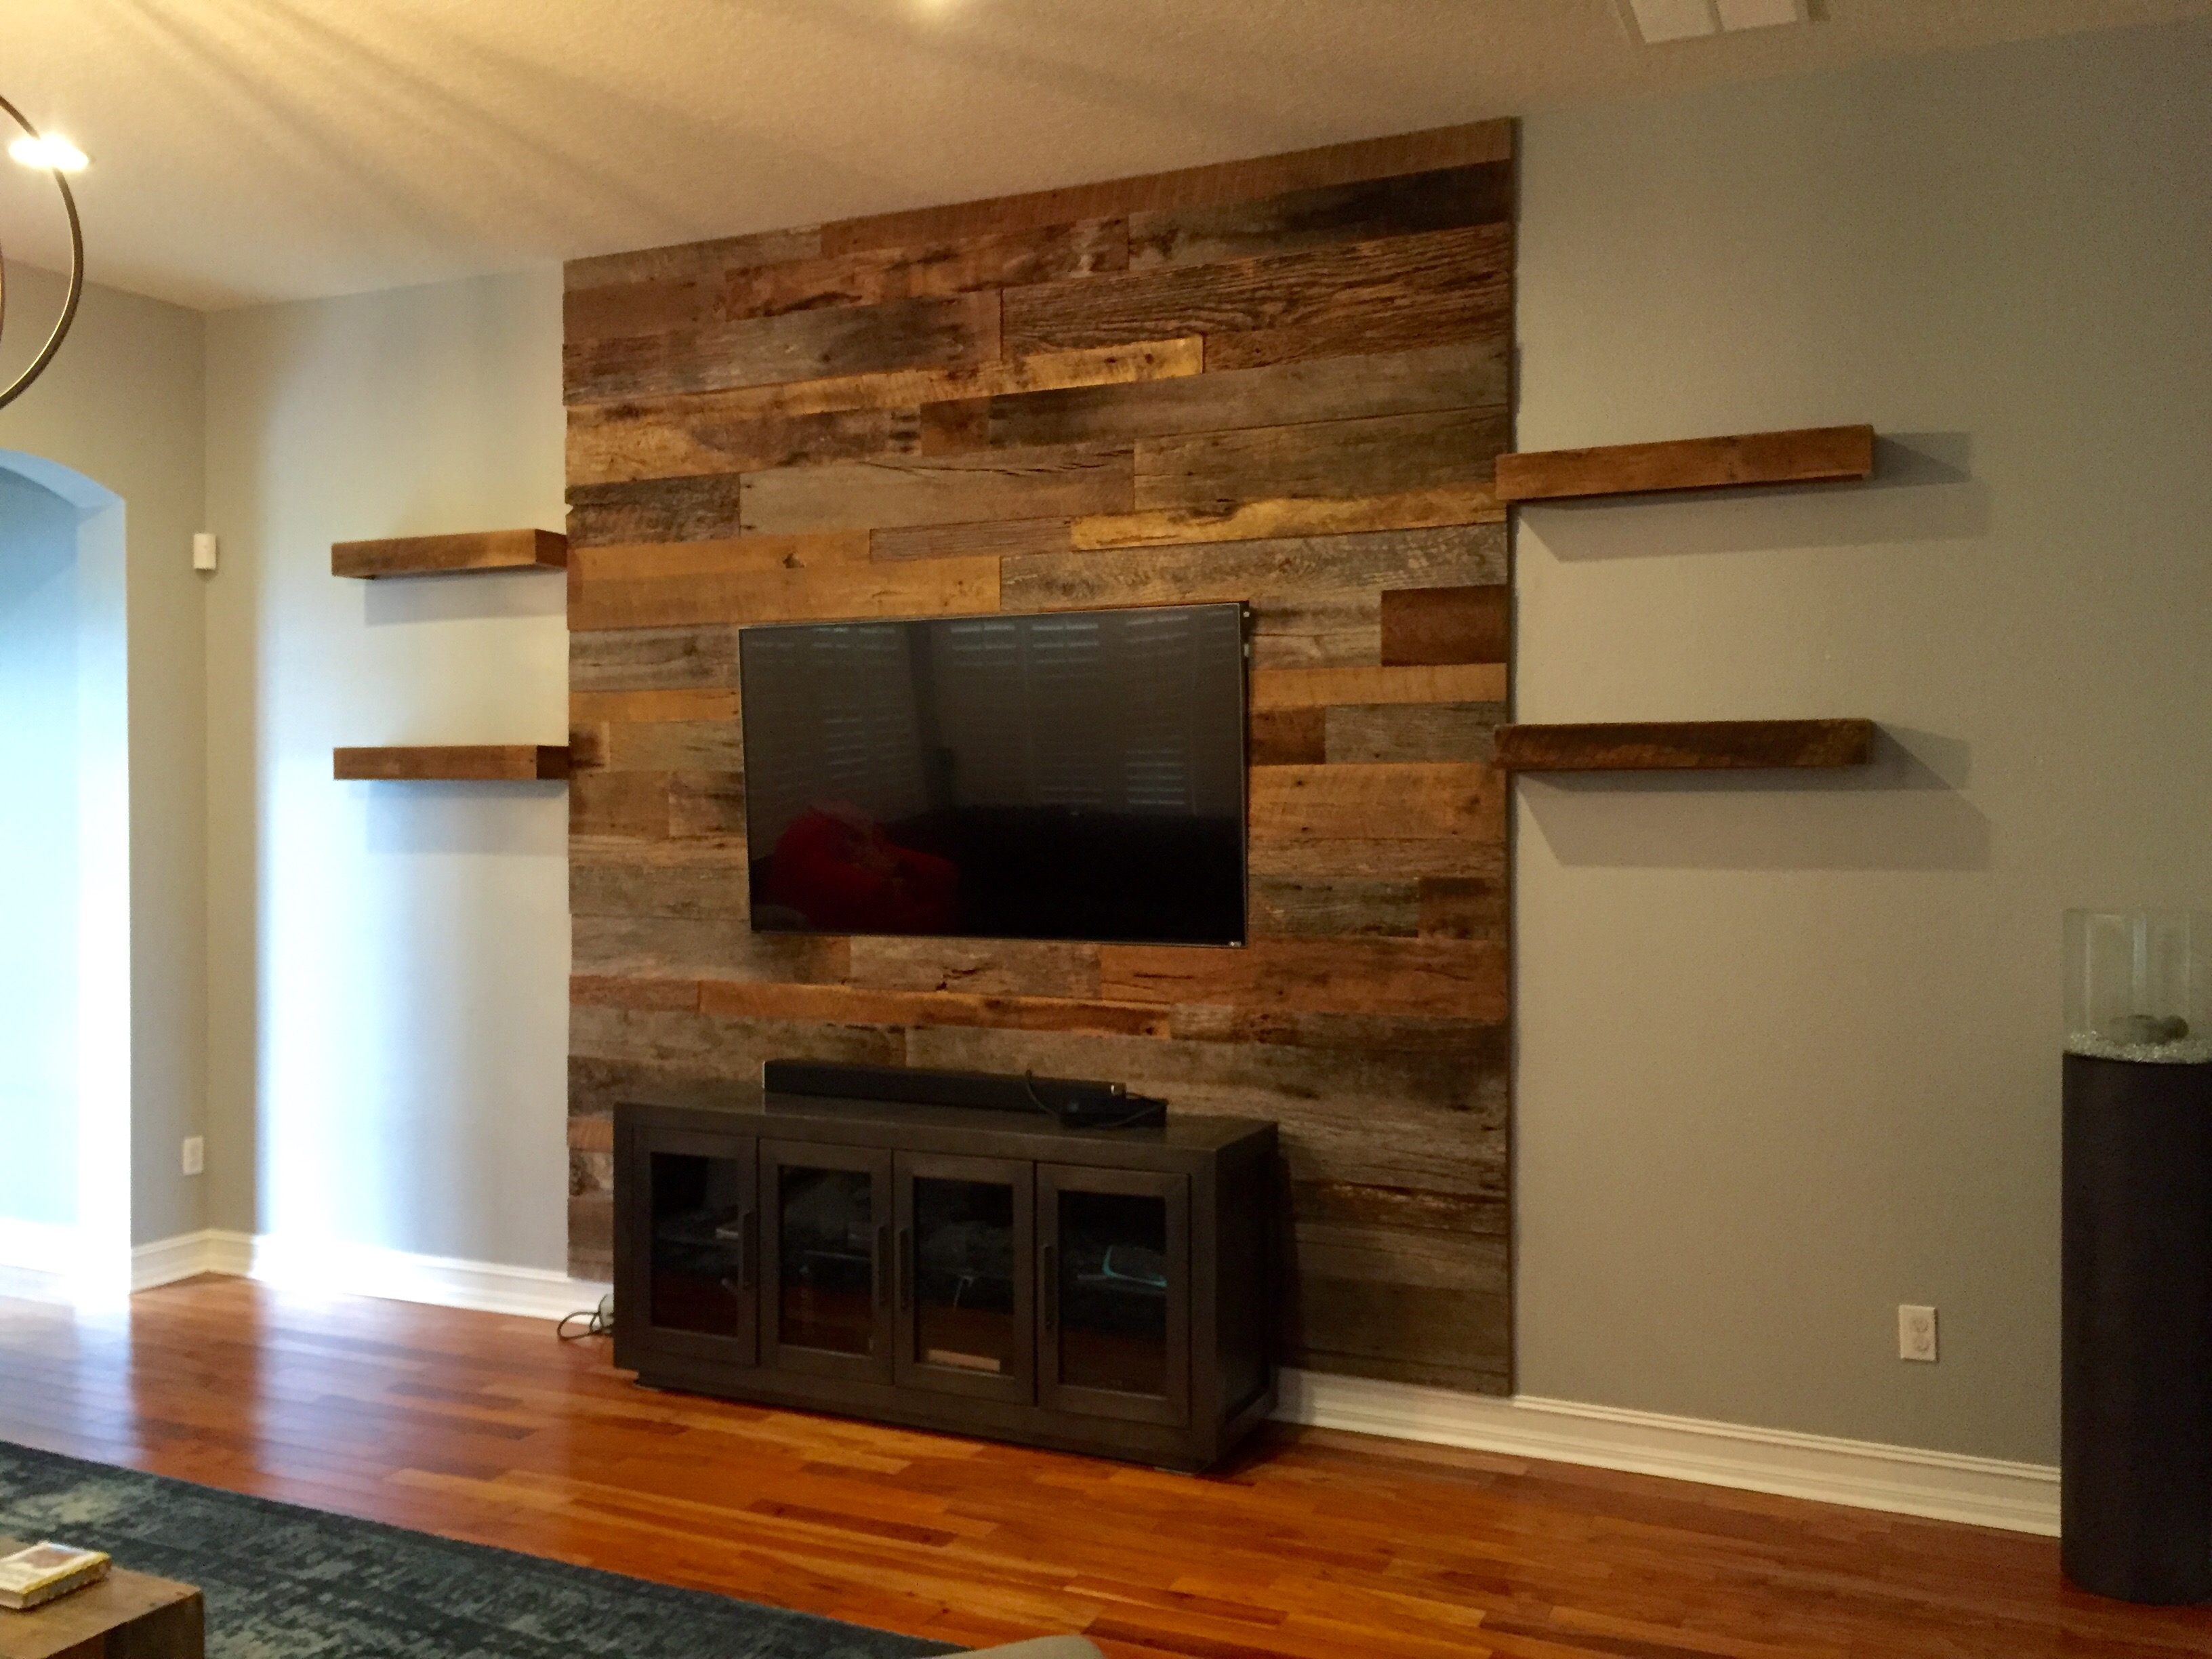 Trevors Reclaimed Barn Wood Accent Wall with Shelving